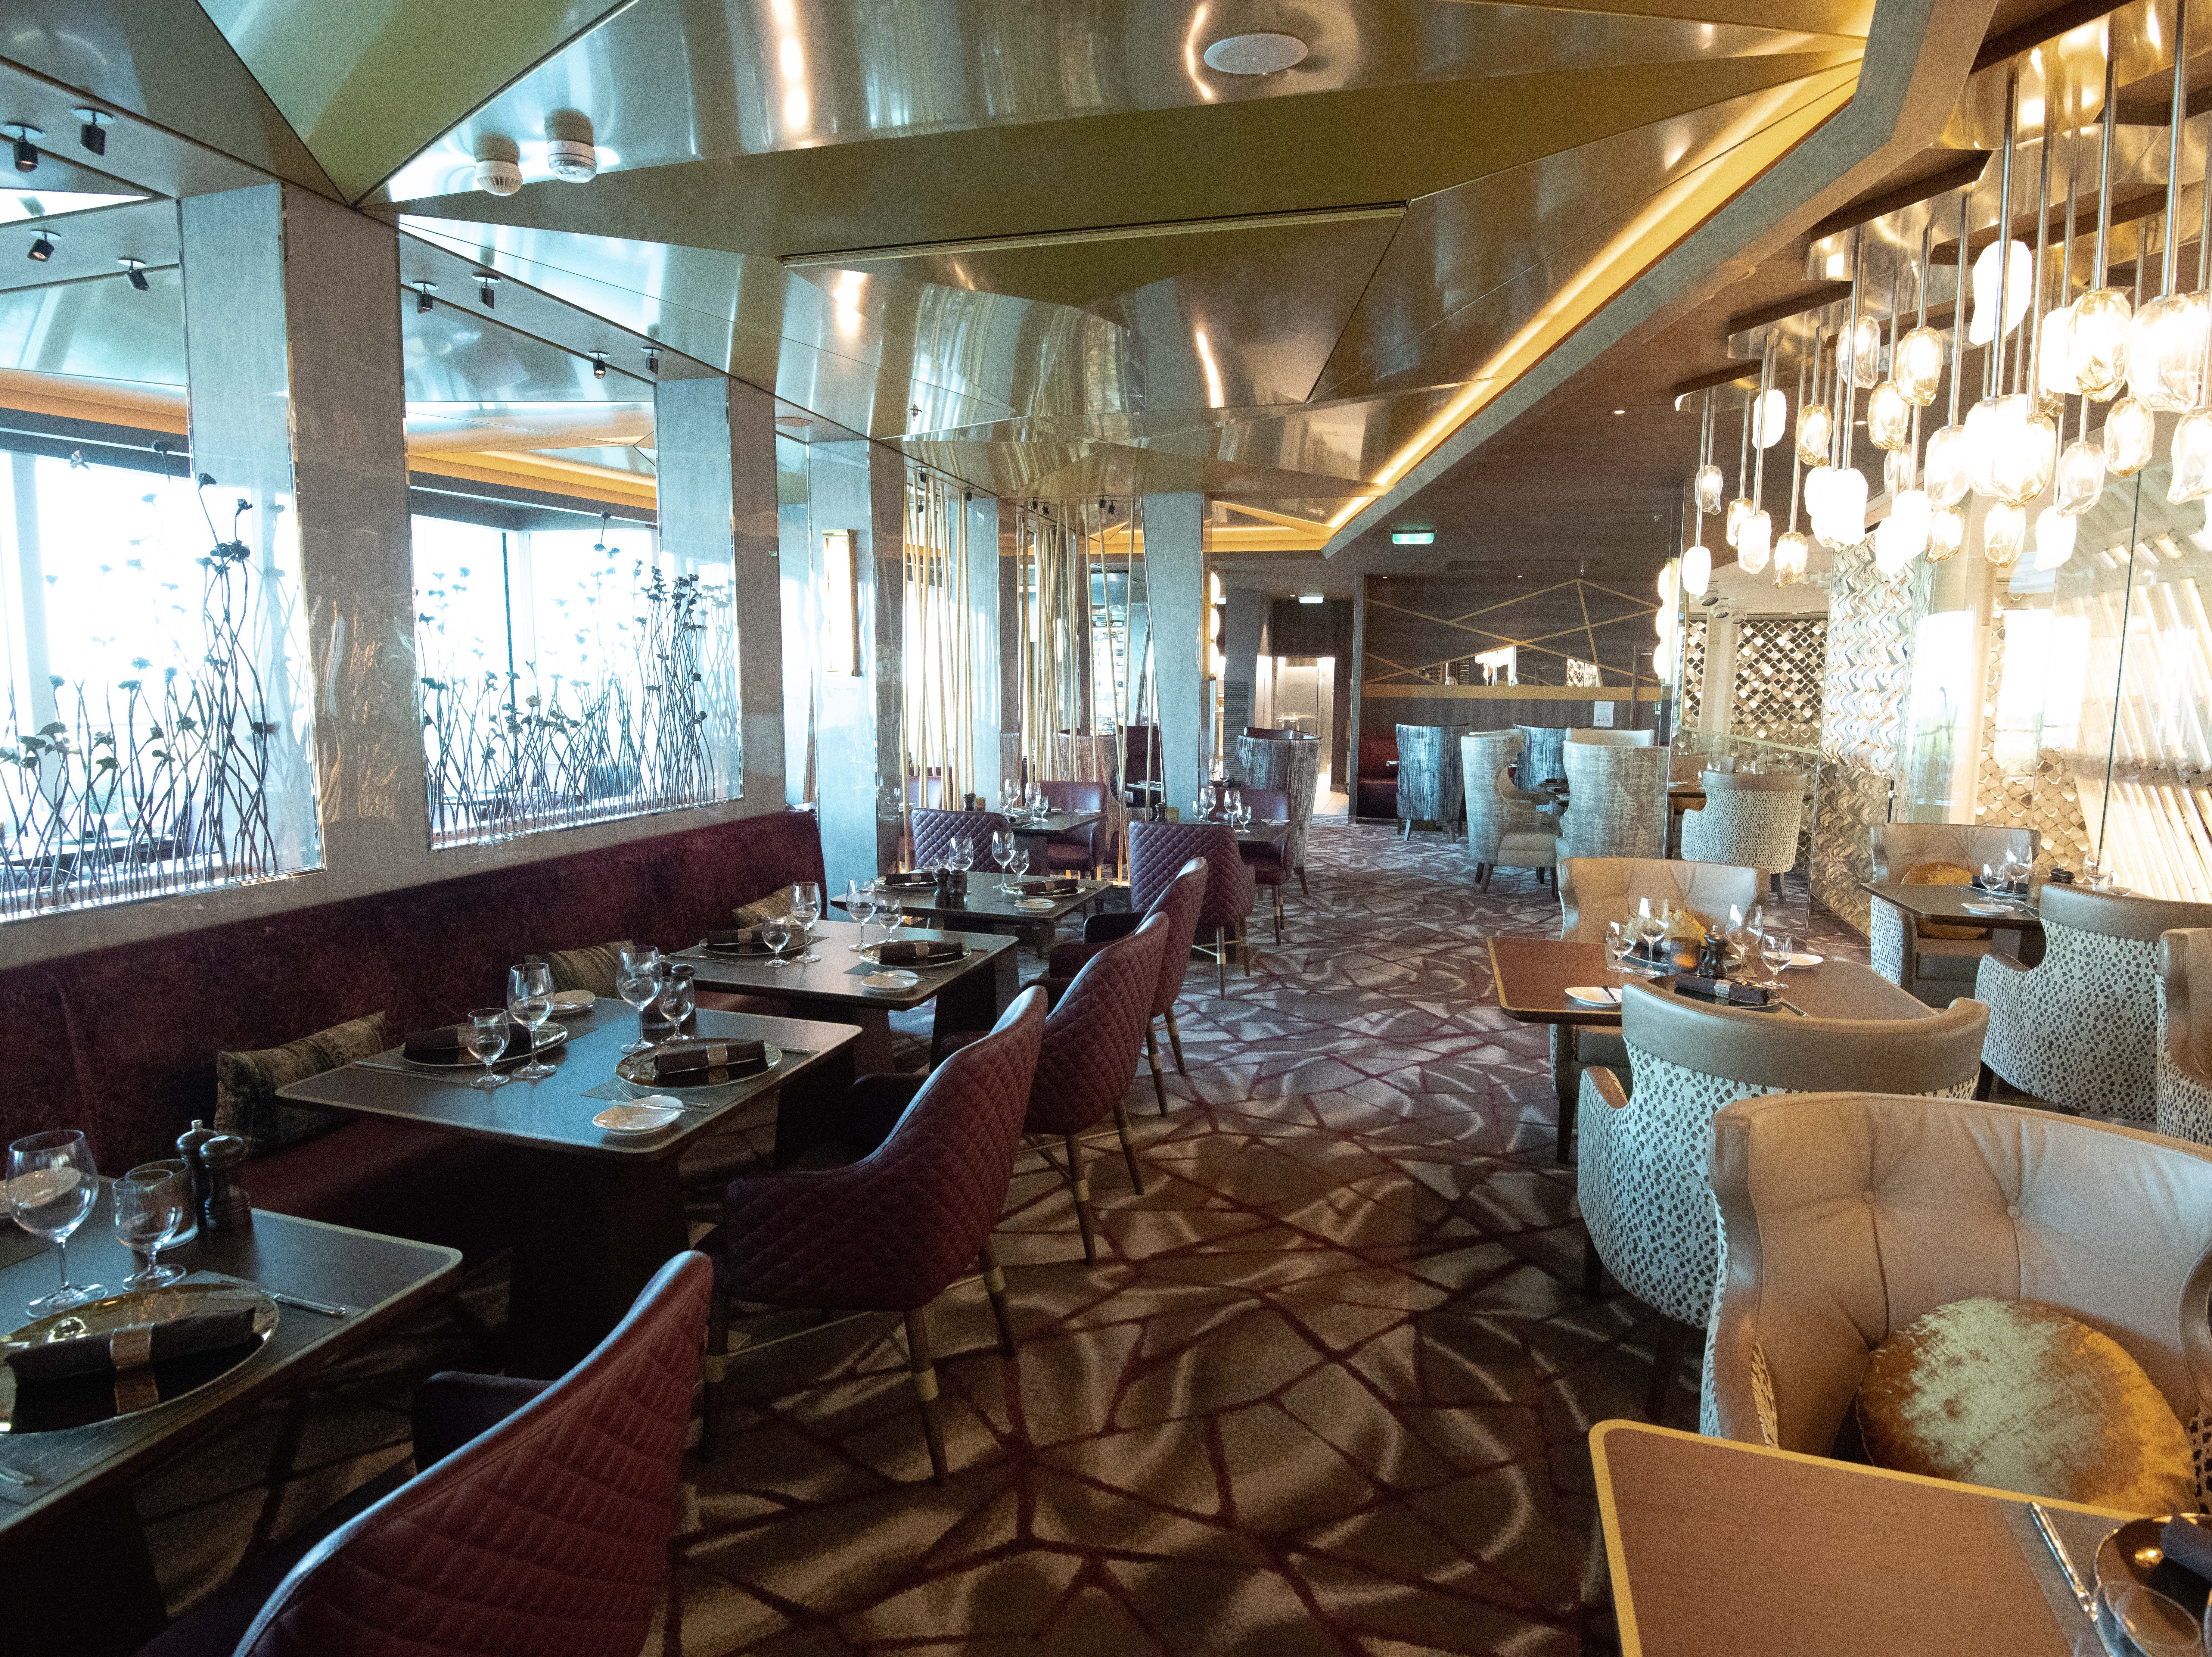 Also located on Deck 5 overlooking The Grand Plaza is Fine Cut Steakhouse, a new-for-Celebrity venue.